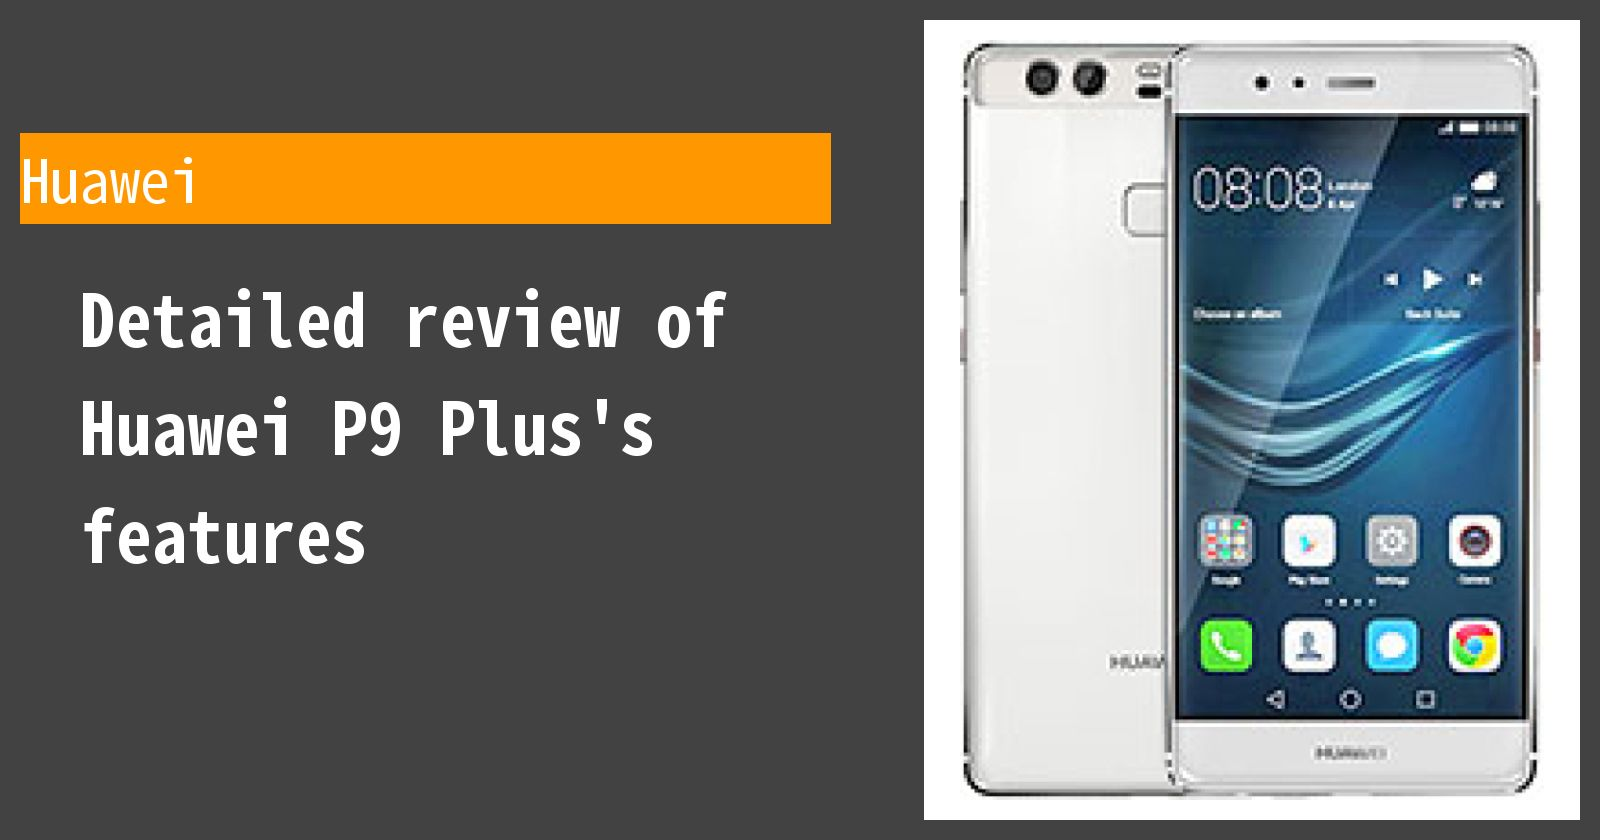 Detailed review of Huawei P9 Plus's features